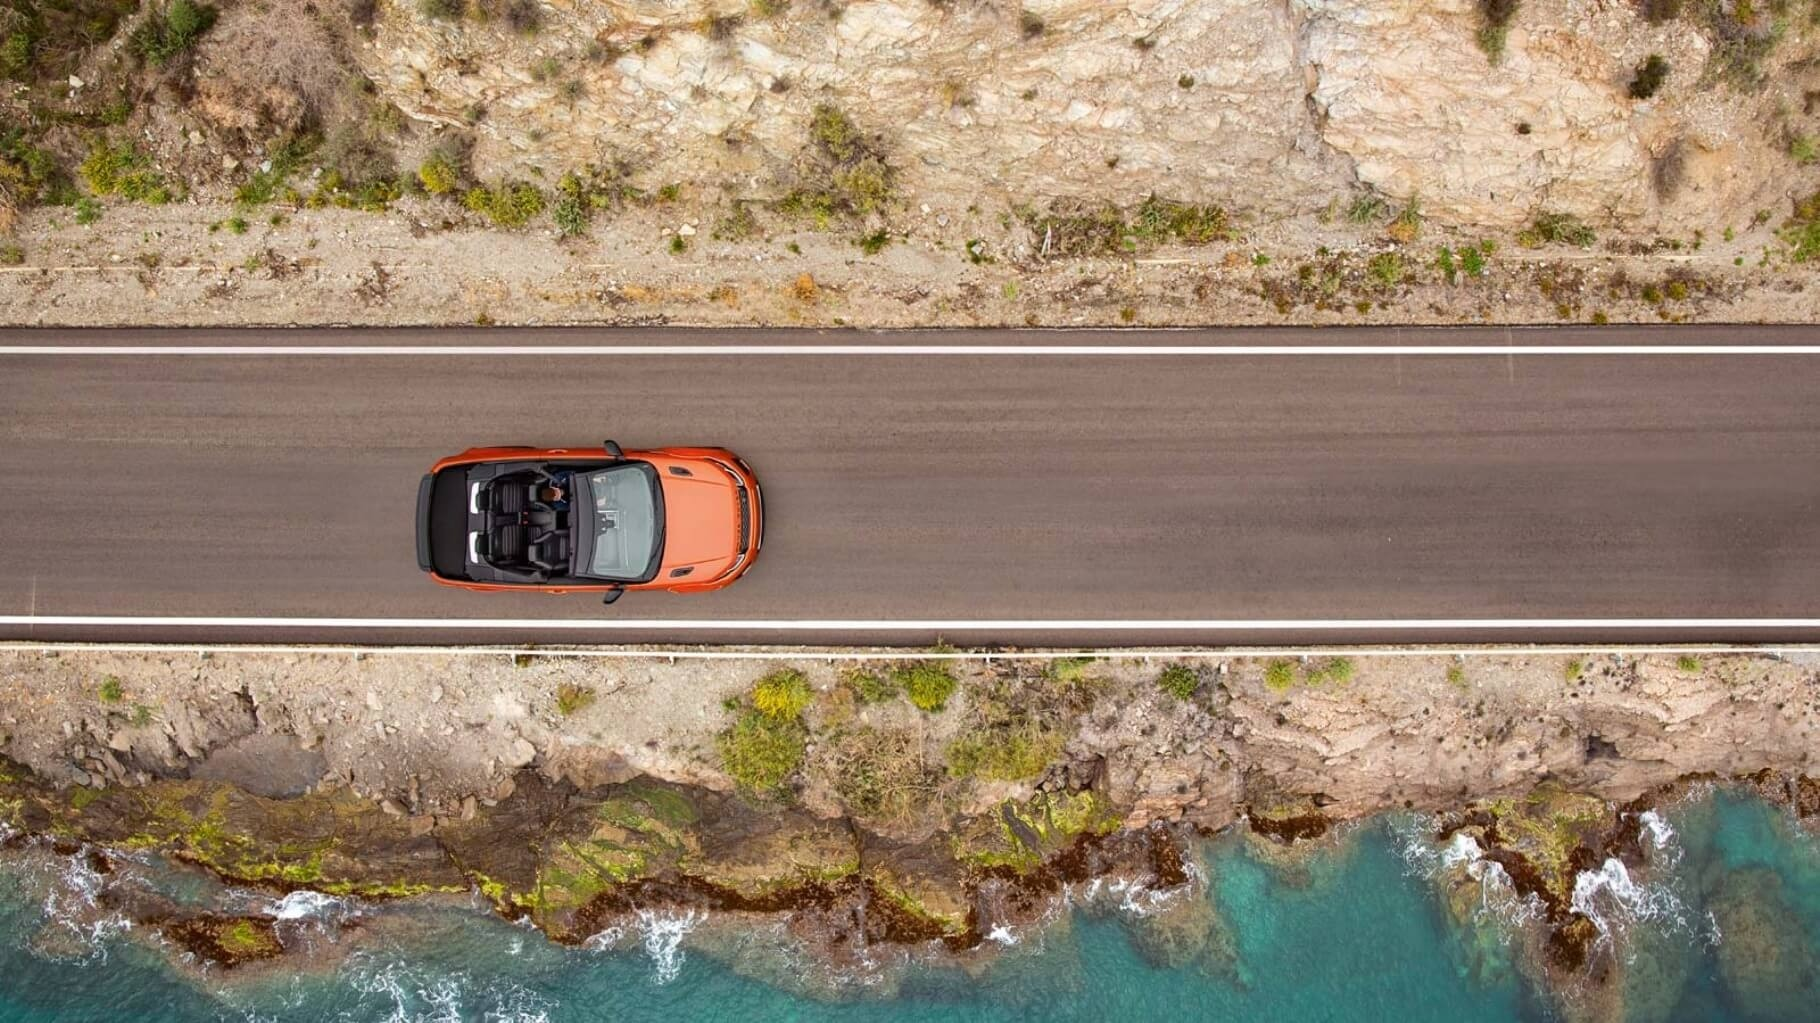 2017 Land Rover Range Rover Evoque Convertible driving top view